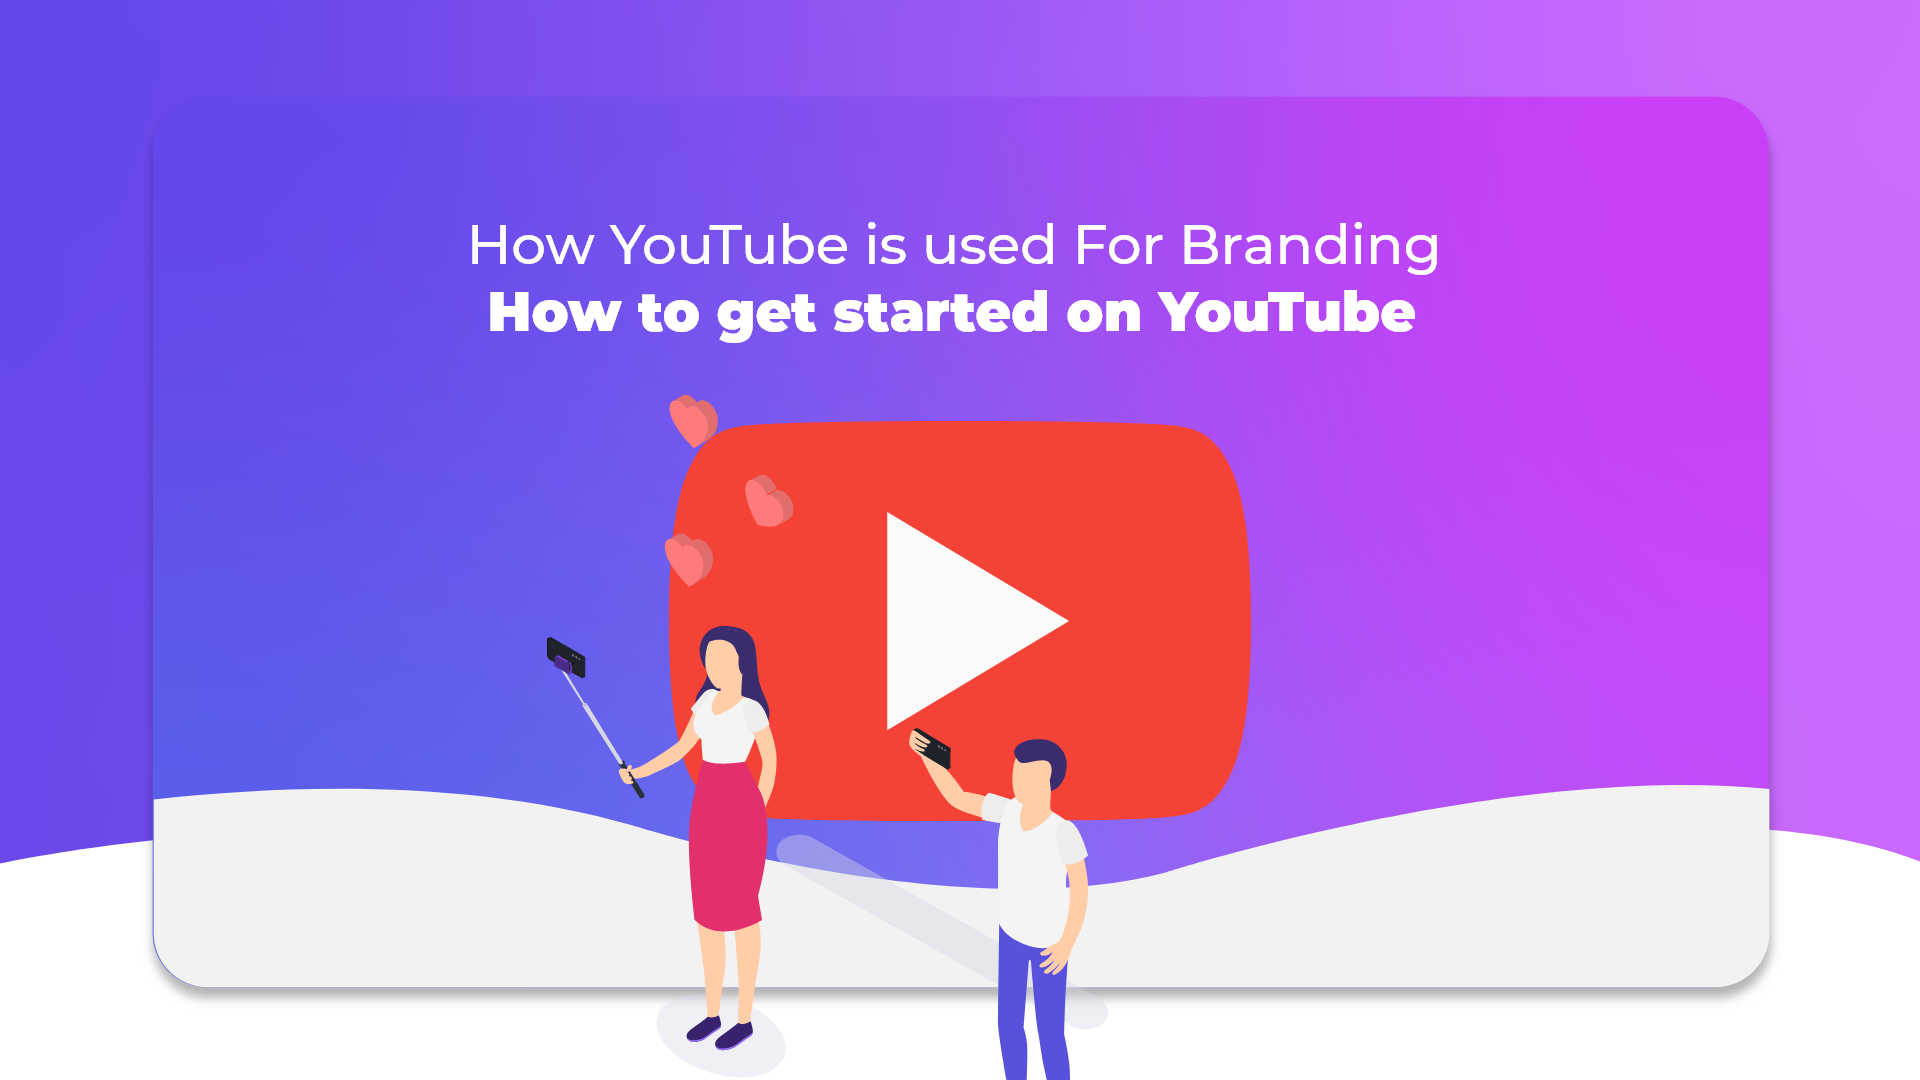 How YouTube is used For Branding